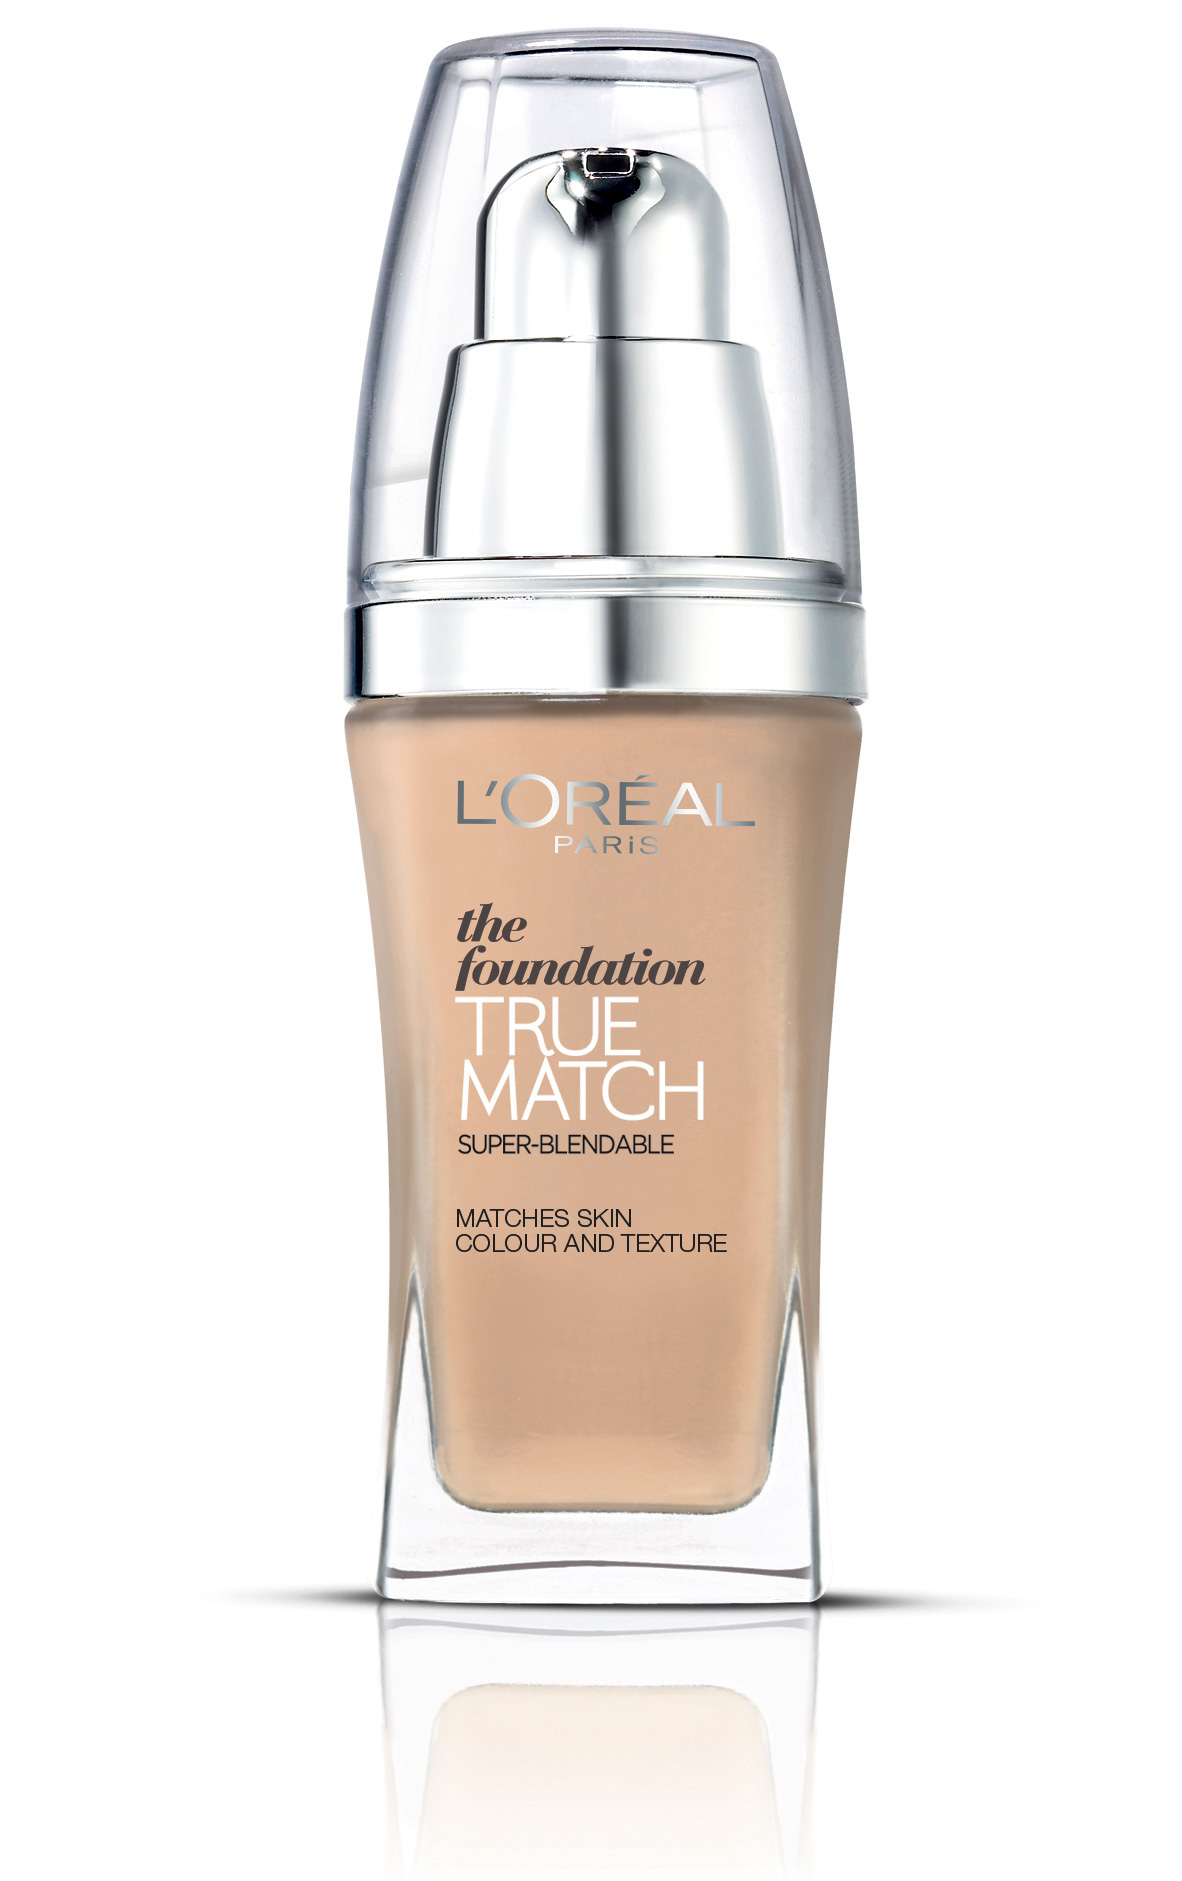 loreal brand overview Check out our l'oréal paris company overview and review today  which  boasts remarkably strong global brand recognition, l'oréal is the  collection  exclusive in liya's red #lorealleague pictwittercom/koy2u25qhb.